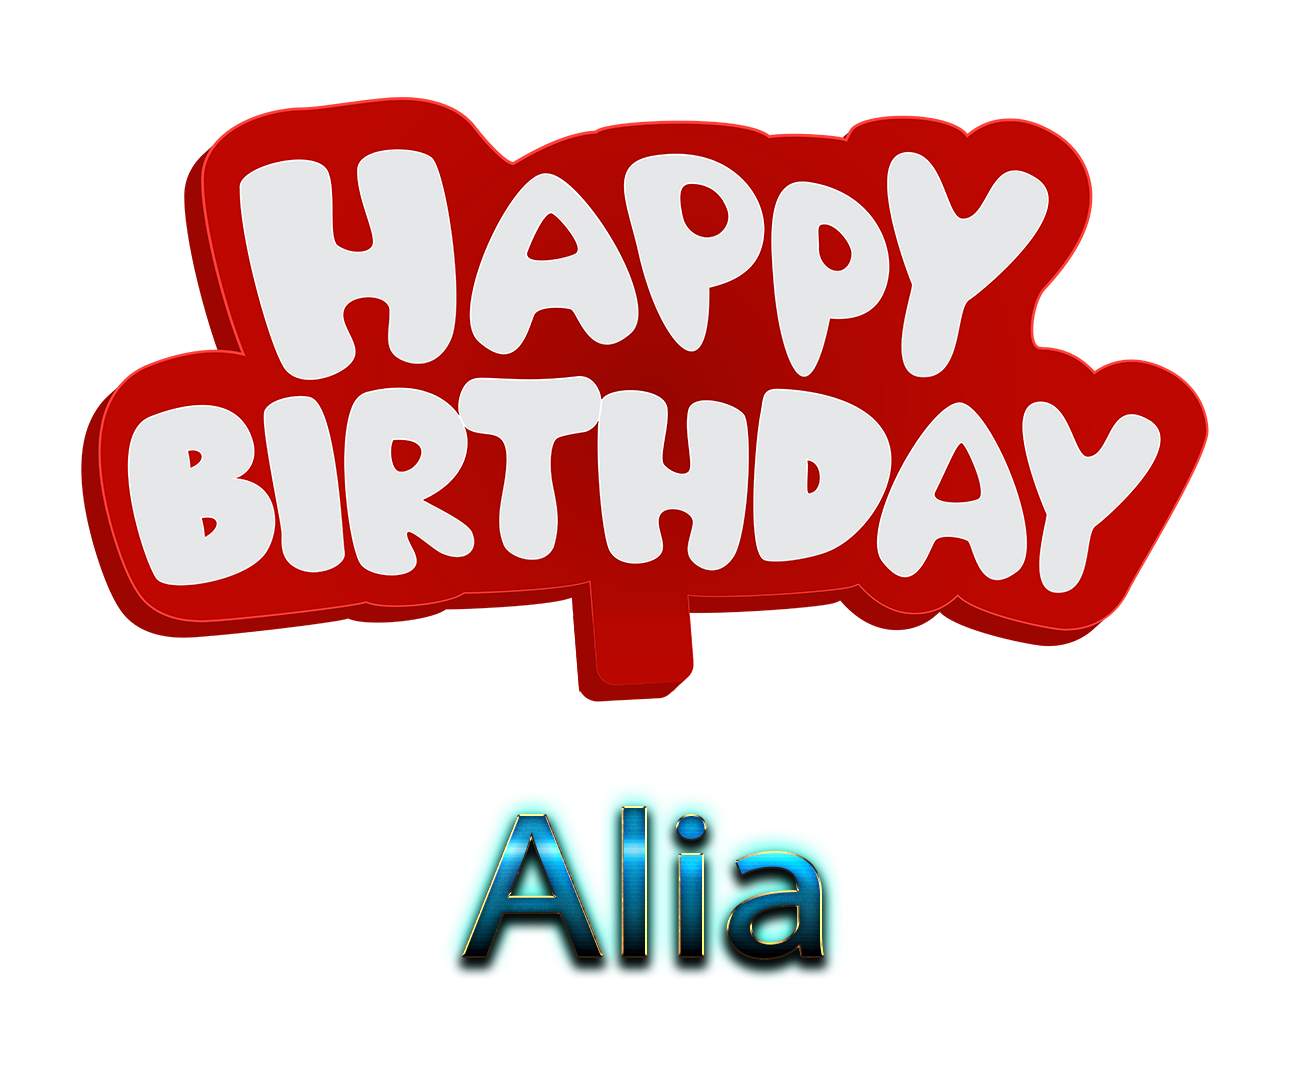 Ali-a png background. Alia image names